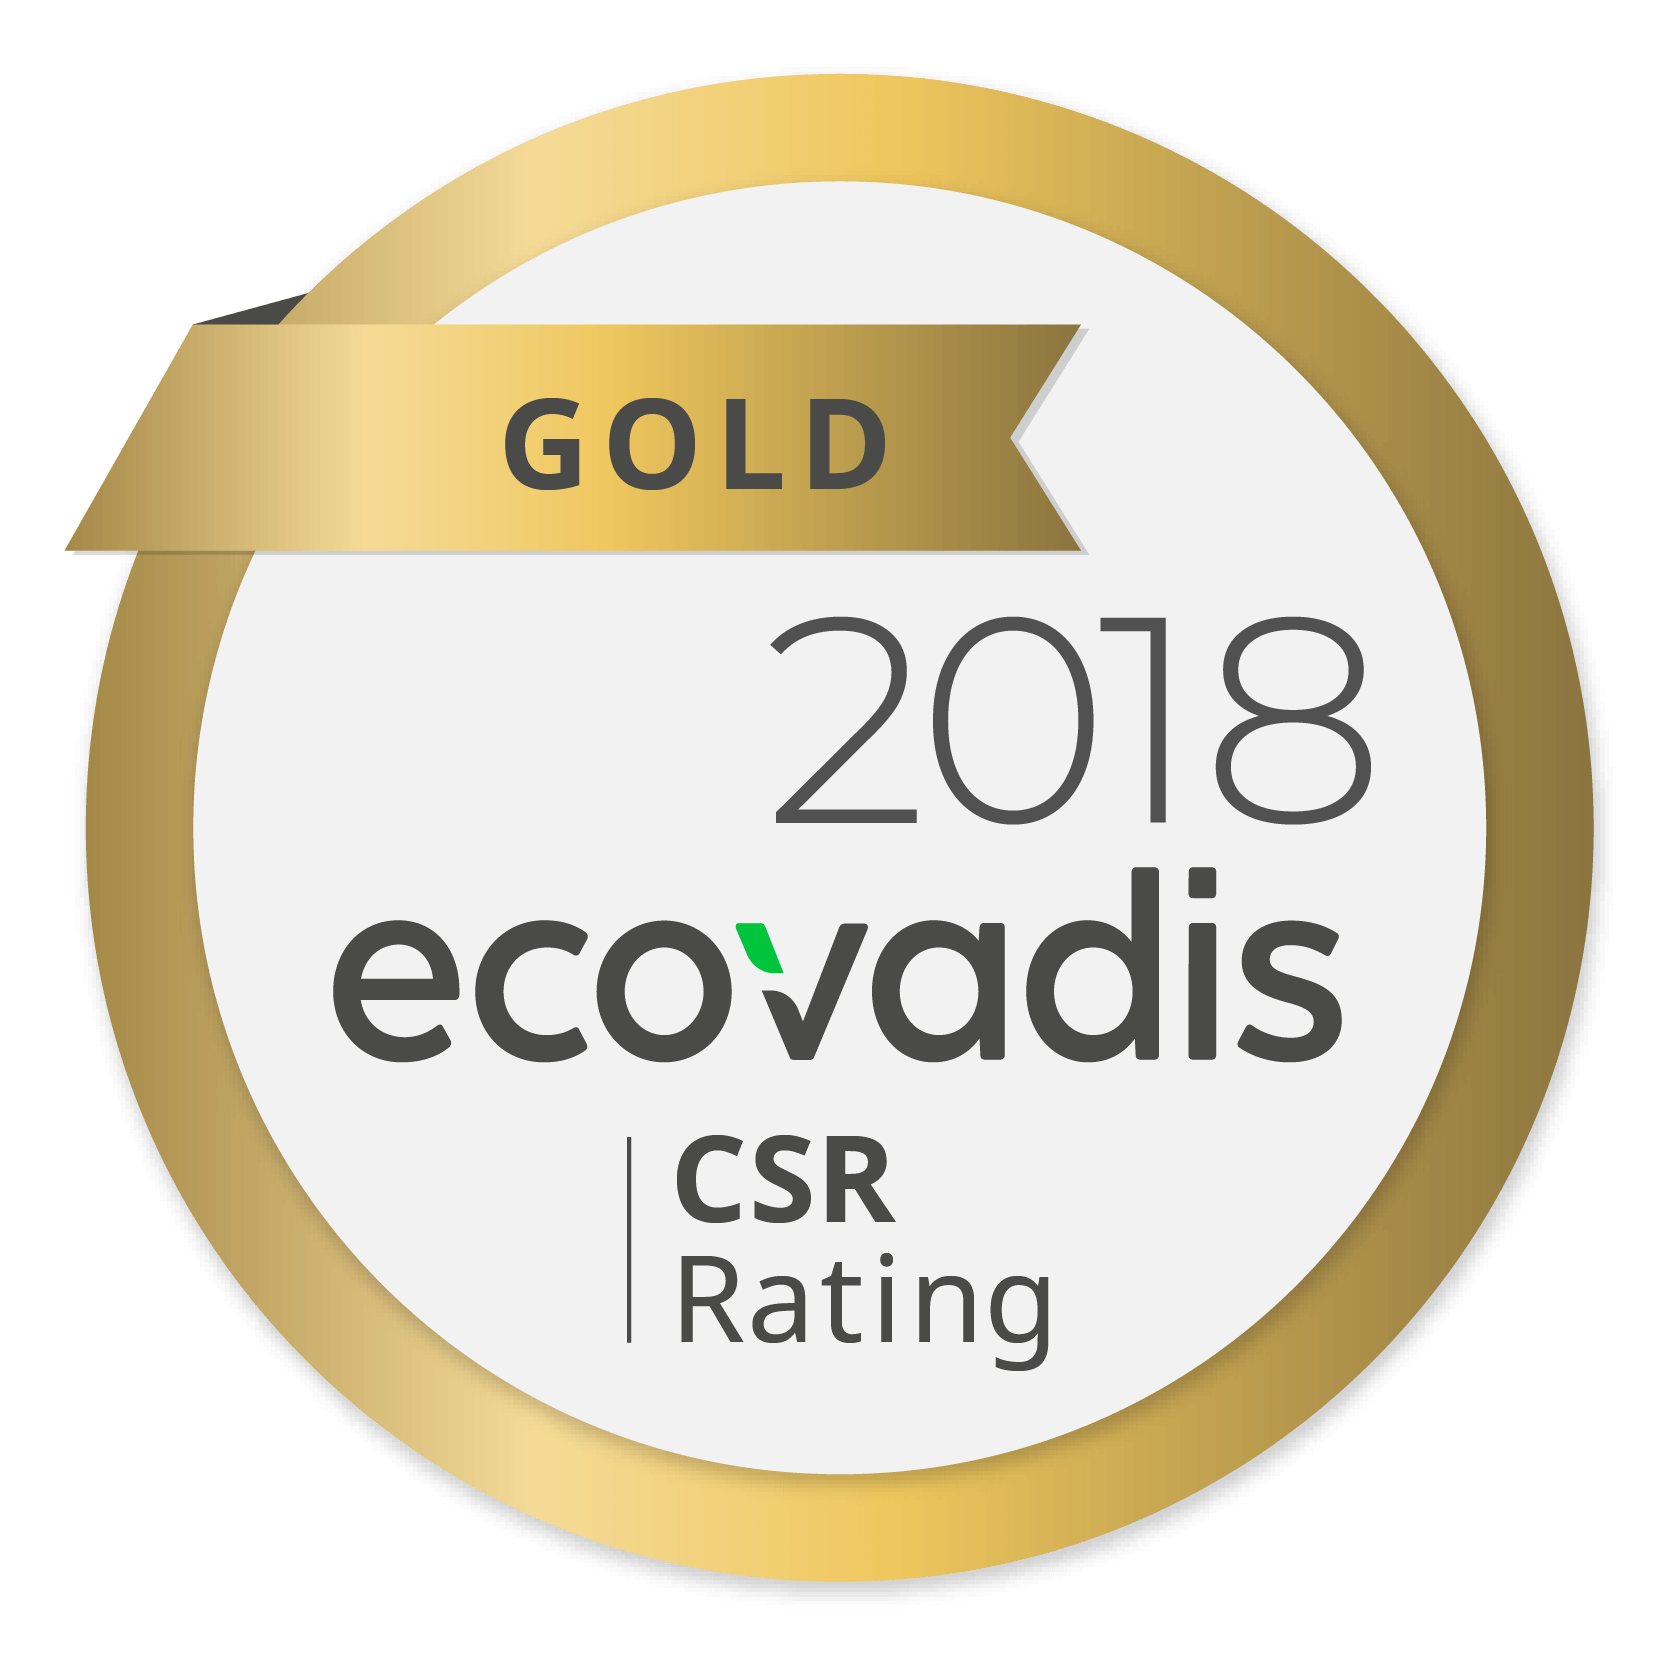 Ricoh awarded highest gold rating in EcoVadis global supplier survey for fourth year running